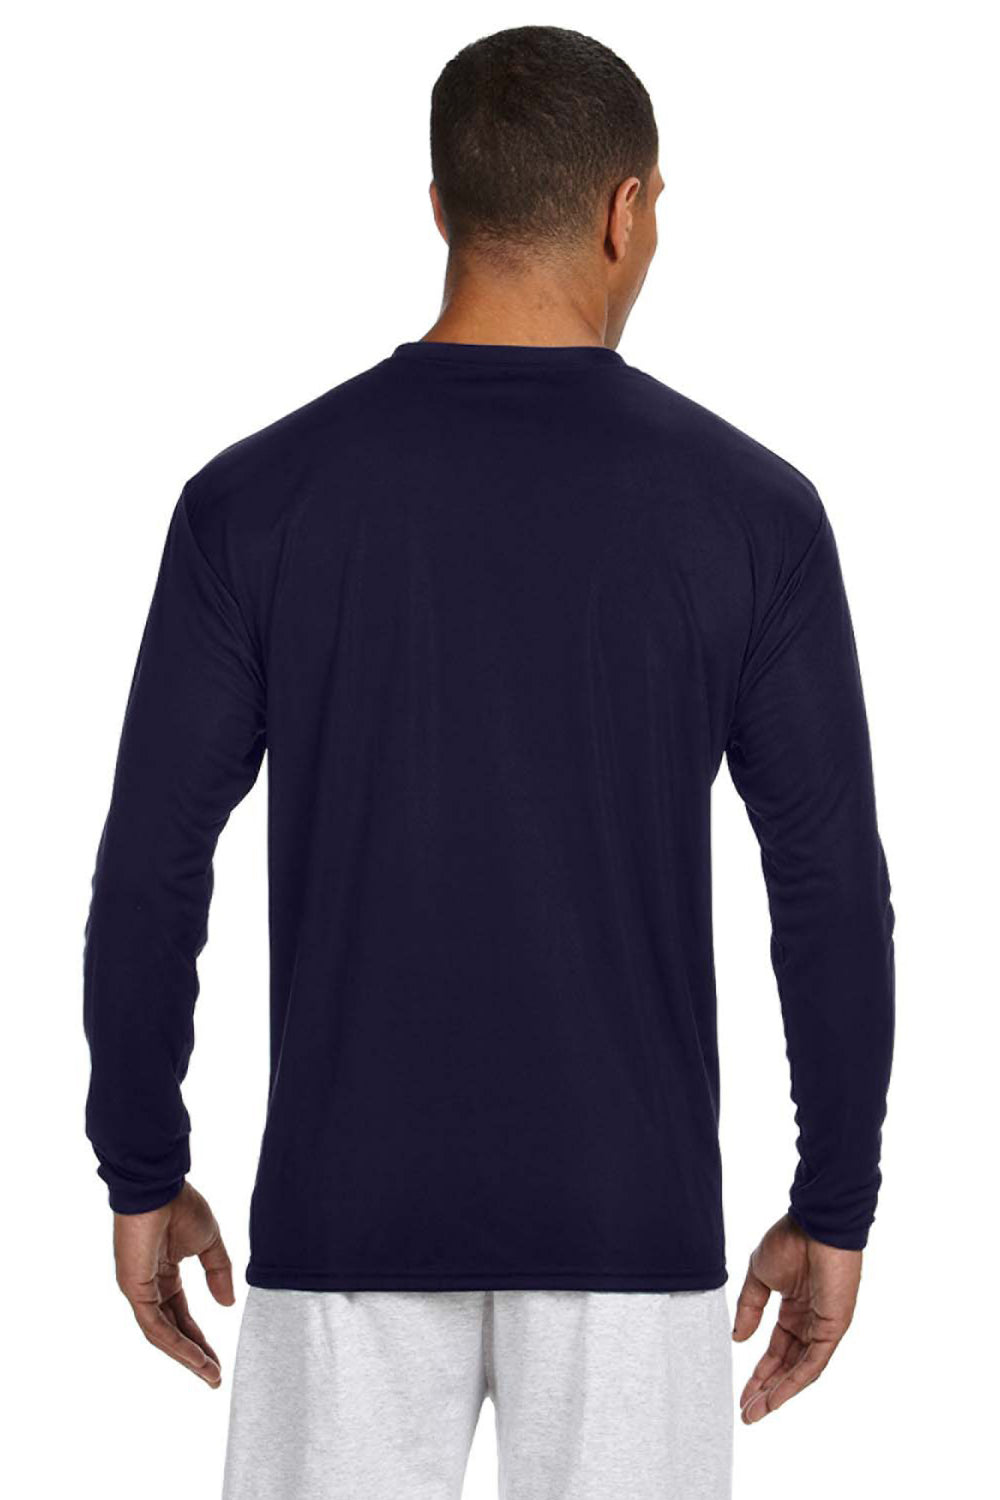 A4 N3165 Mens Cooling Performance Moisture Wicking Long Sleeve Crewneck T-Shirt Navy Blue Back